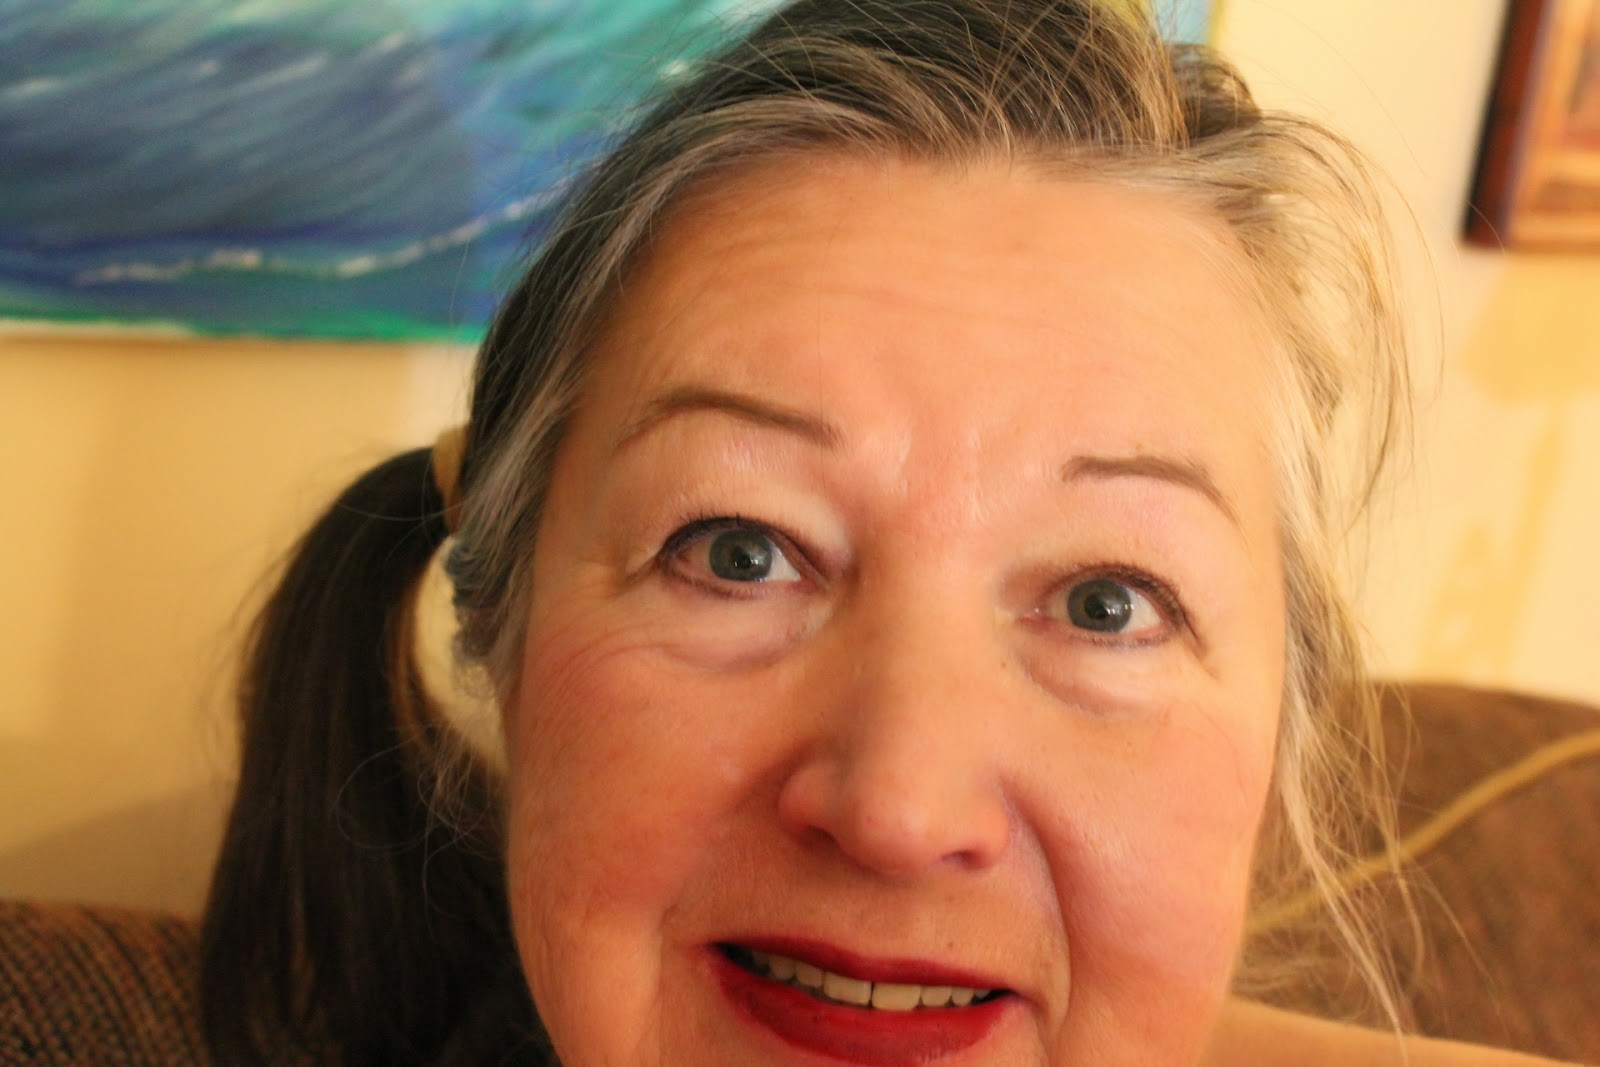 Selfie photo of me Gloria Poole of Missouri and Georgia in my living room on 15-Mar-2014.